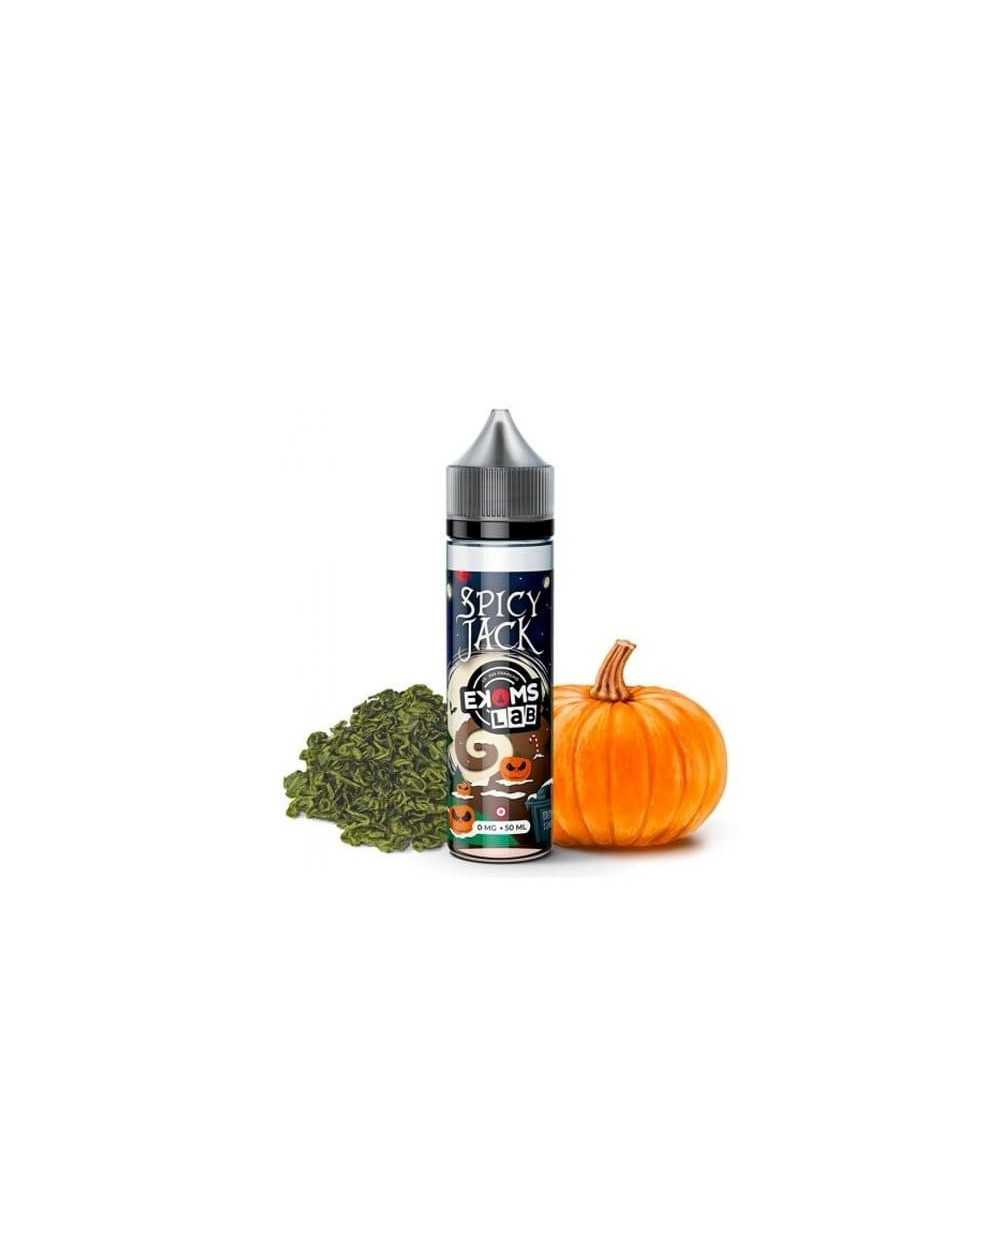 Spicy Jack 50ml - Ekoms-1